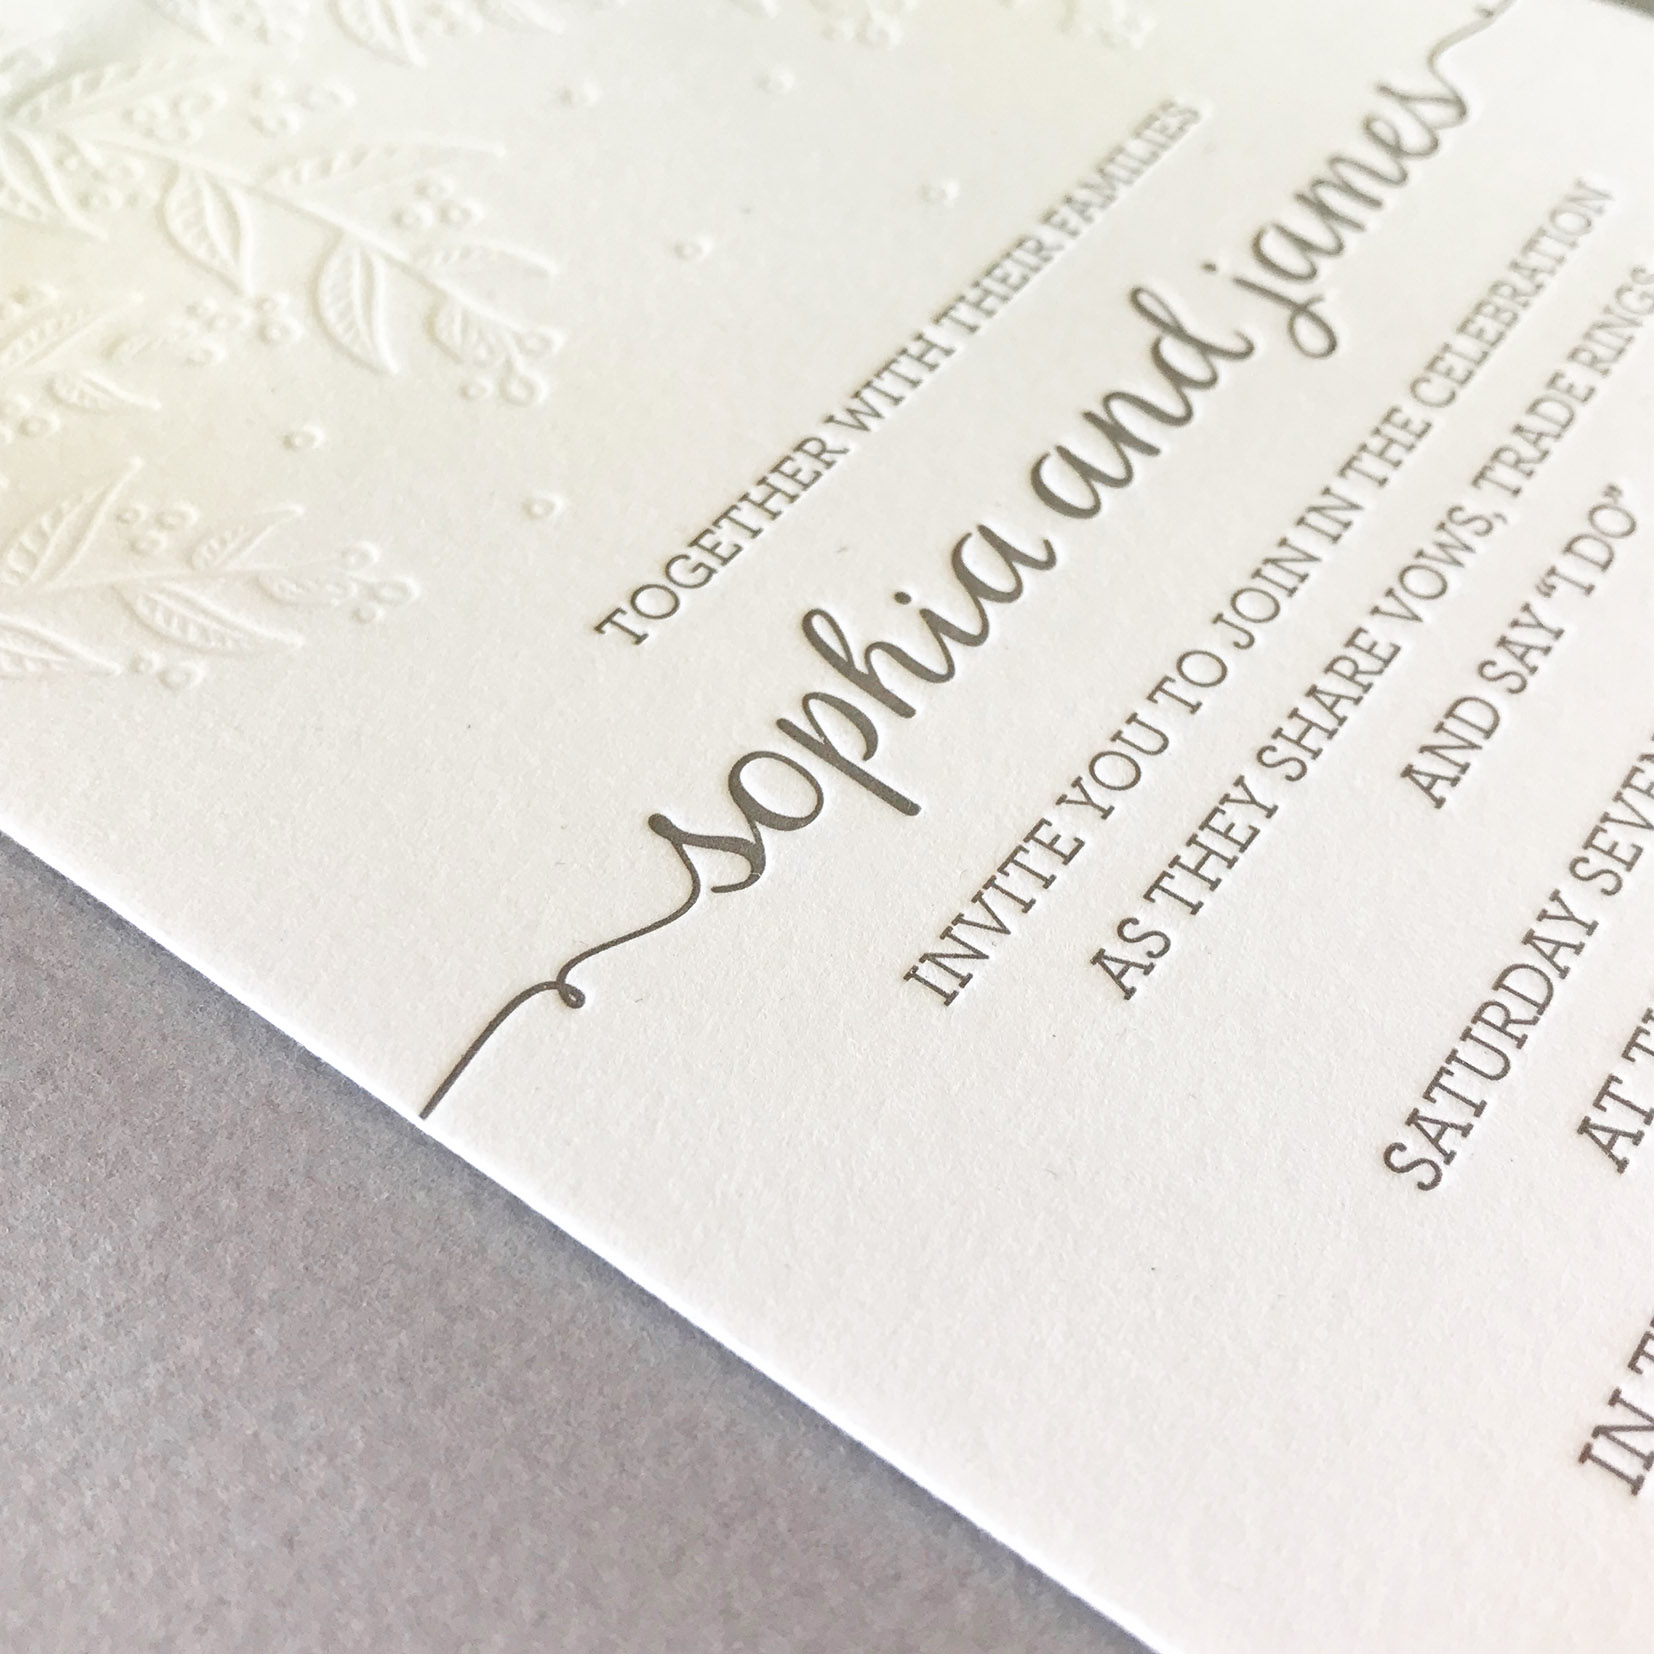 ficus and fig design letterpress wedding invitation.png